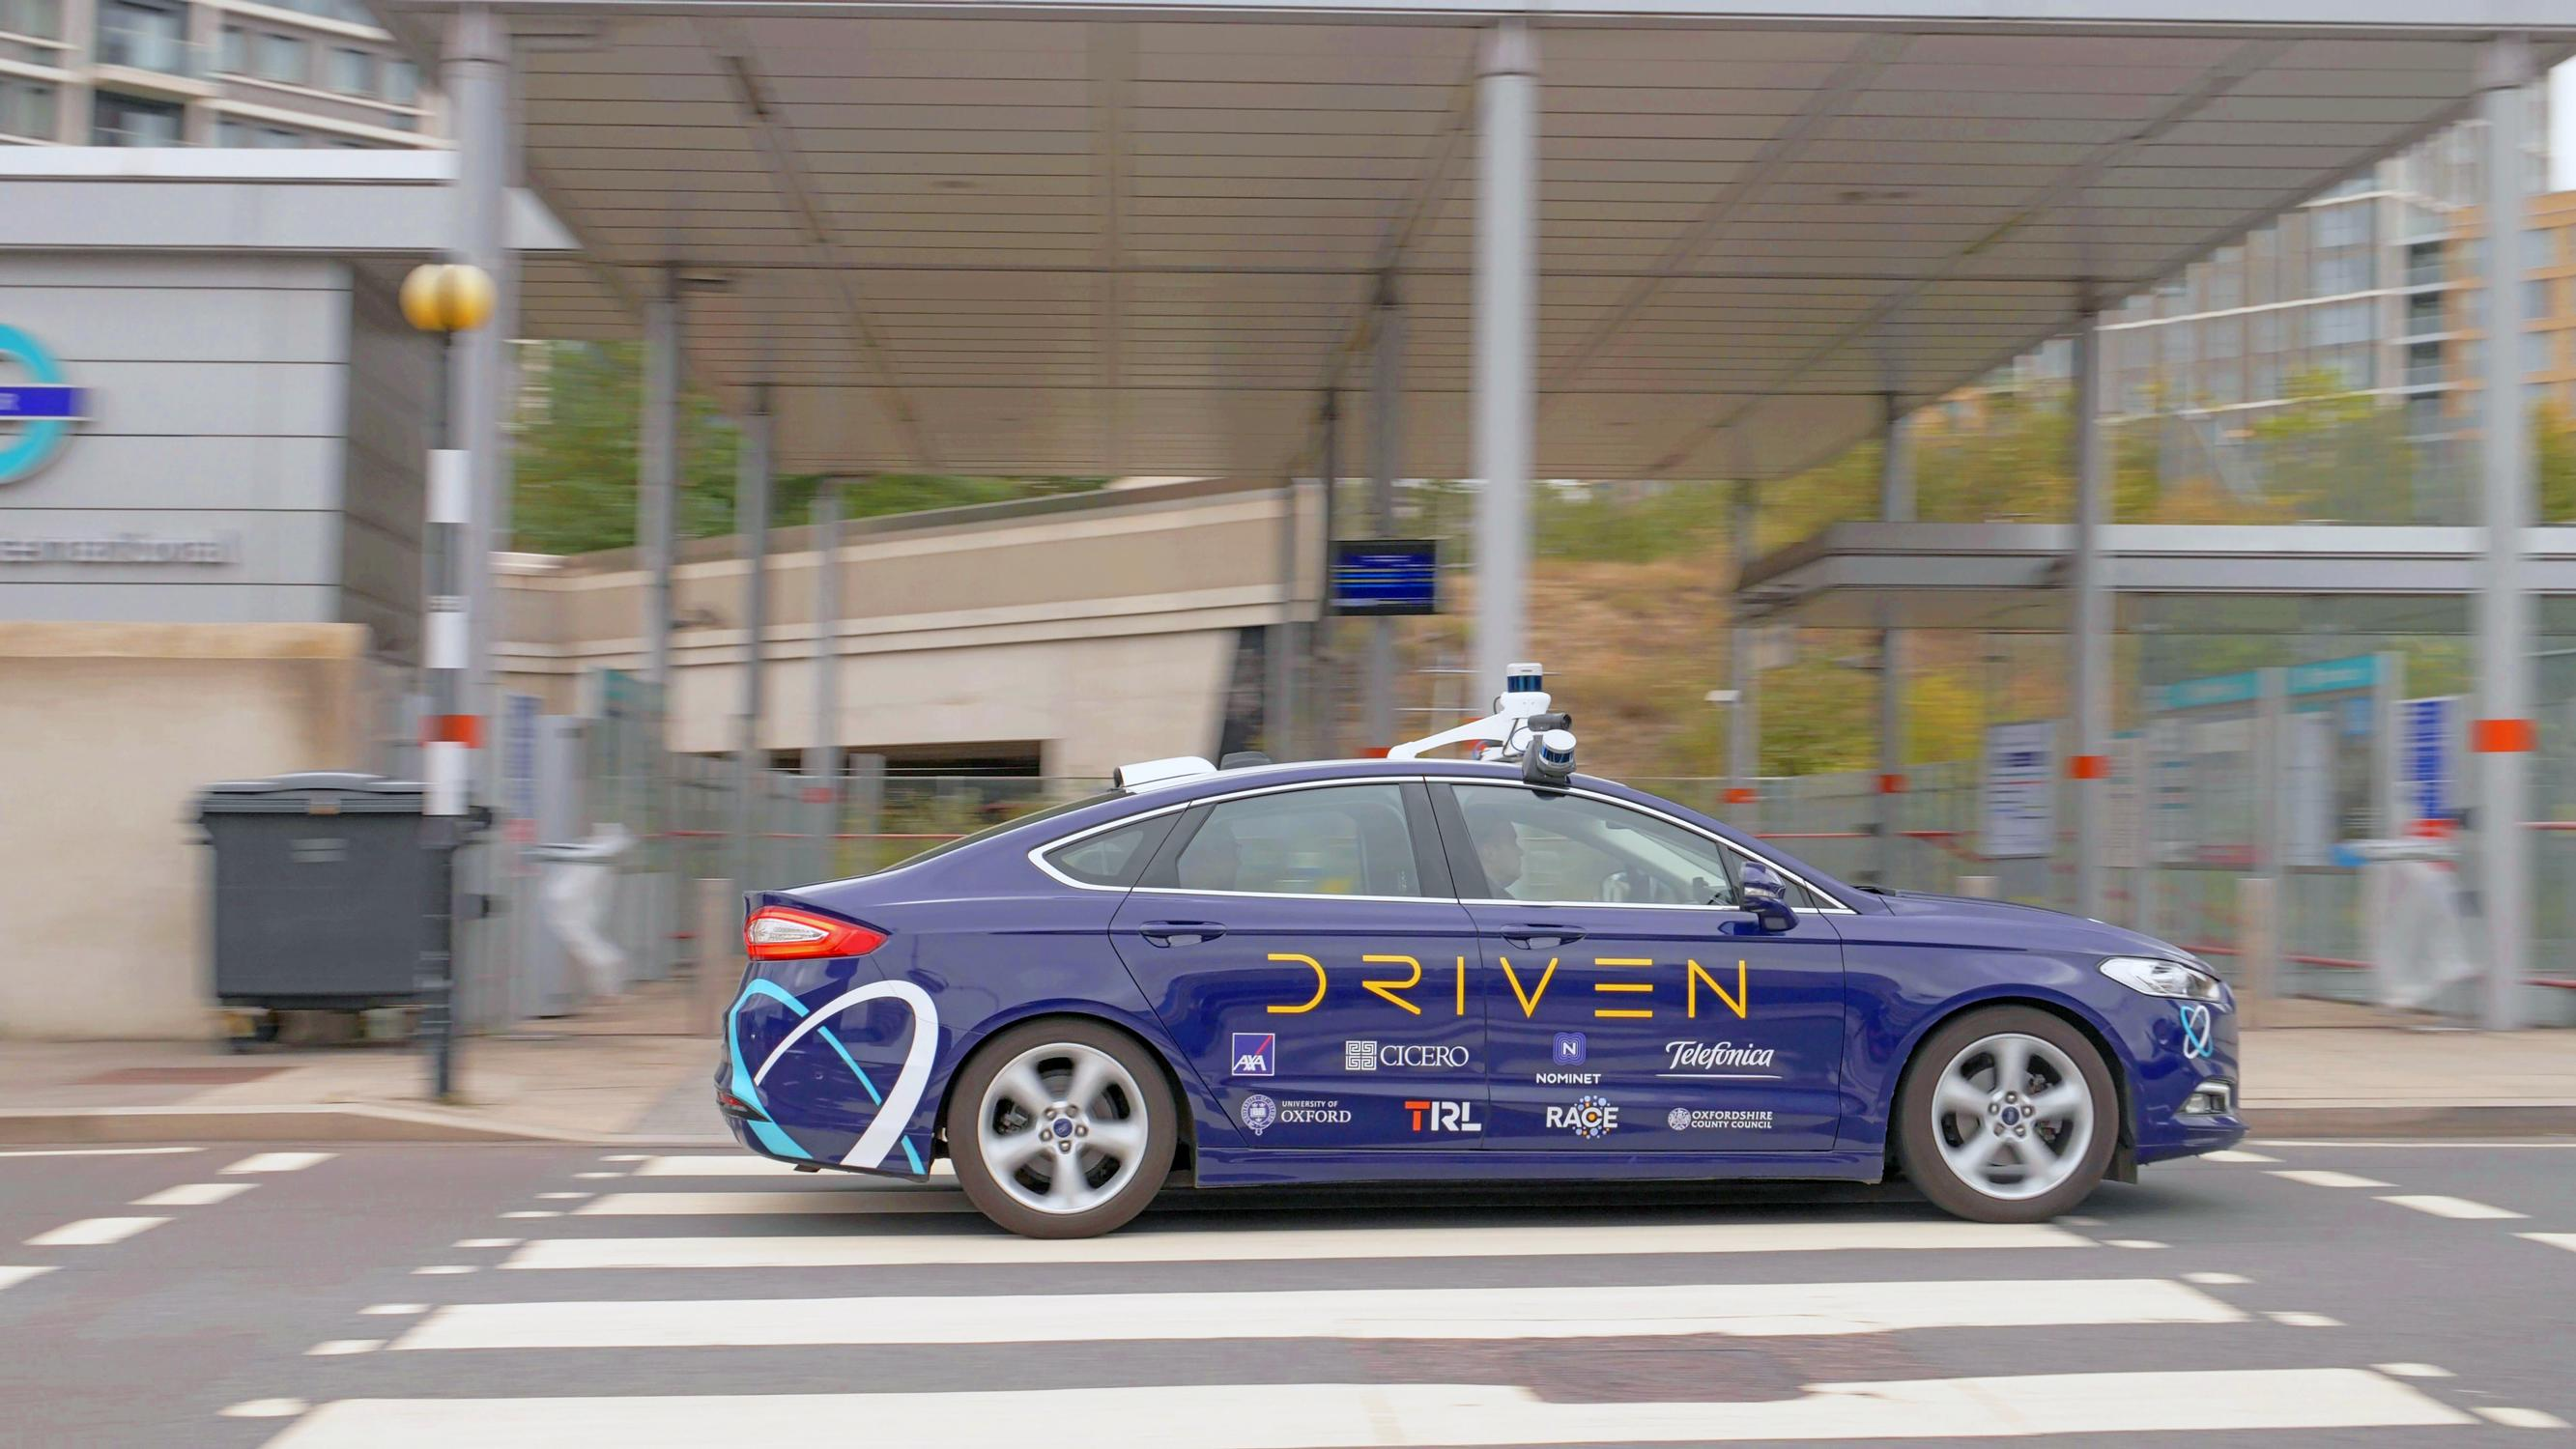 One of the four Oxbotica self-driving cars that took park in a demonstration around Stratford